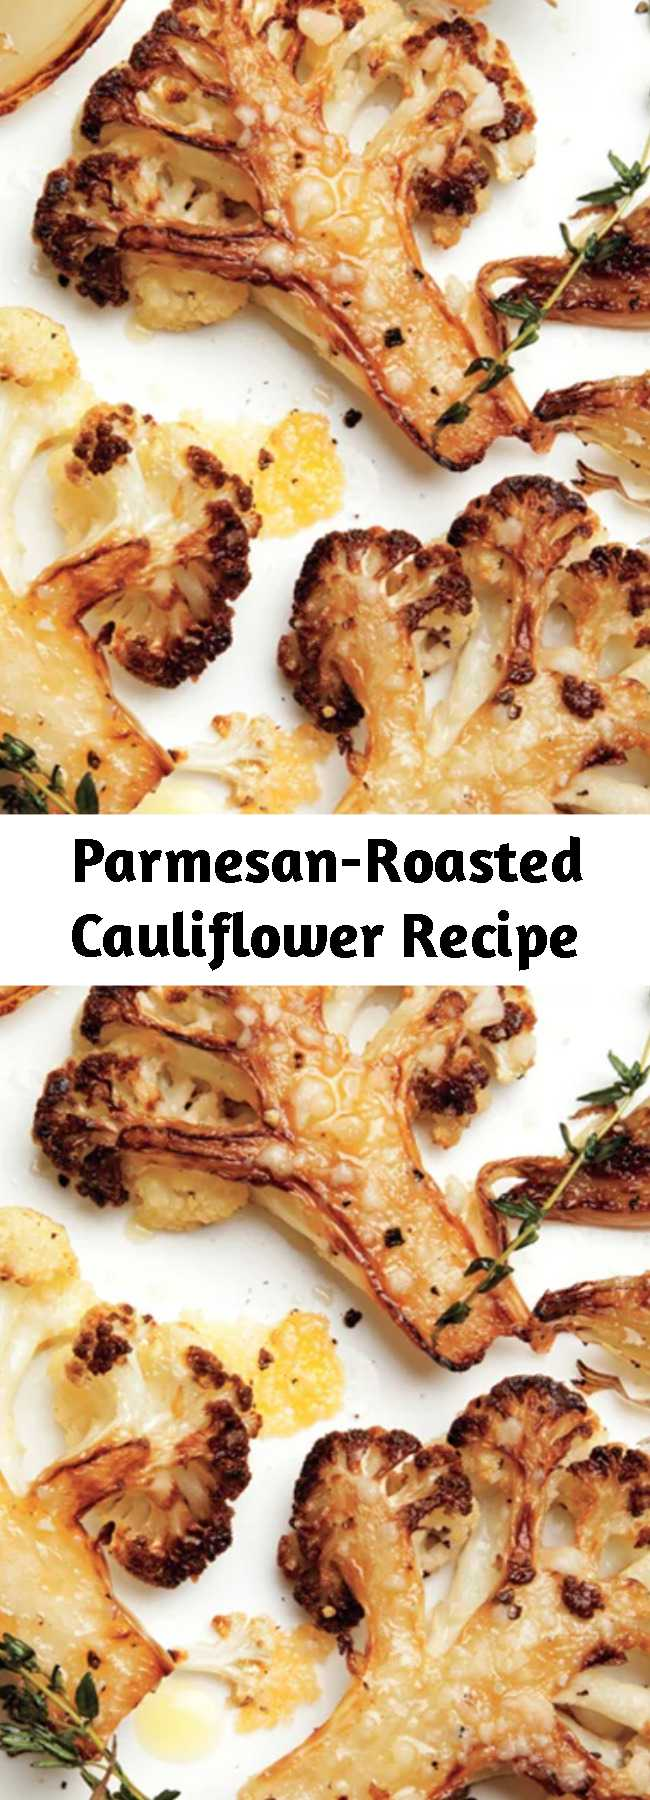 Parmesan-Roasted Cauliflower Recipe - The combination of meaty, caramelized, roasted cauliflower florets and some just-this-side-of-burnt onions has become our go-to winter side dish recipe.